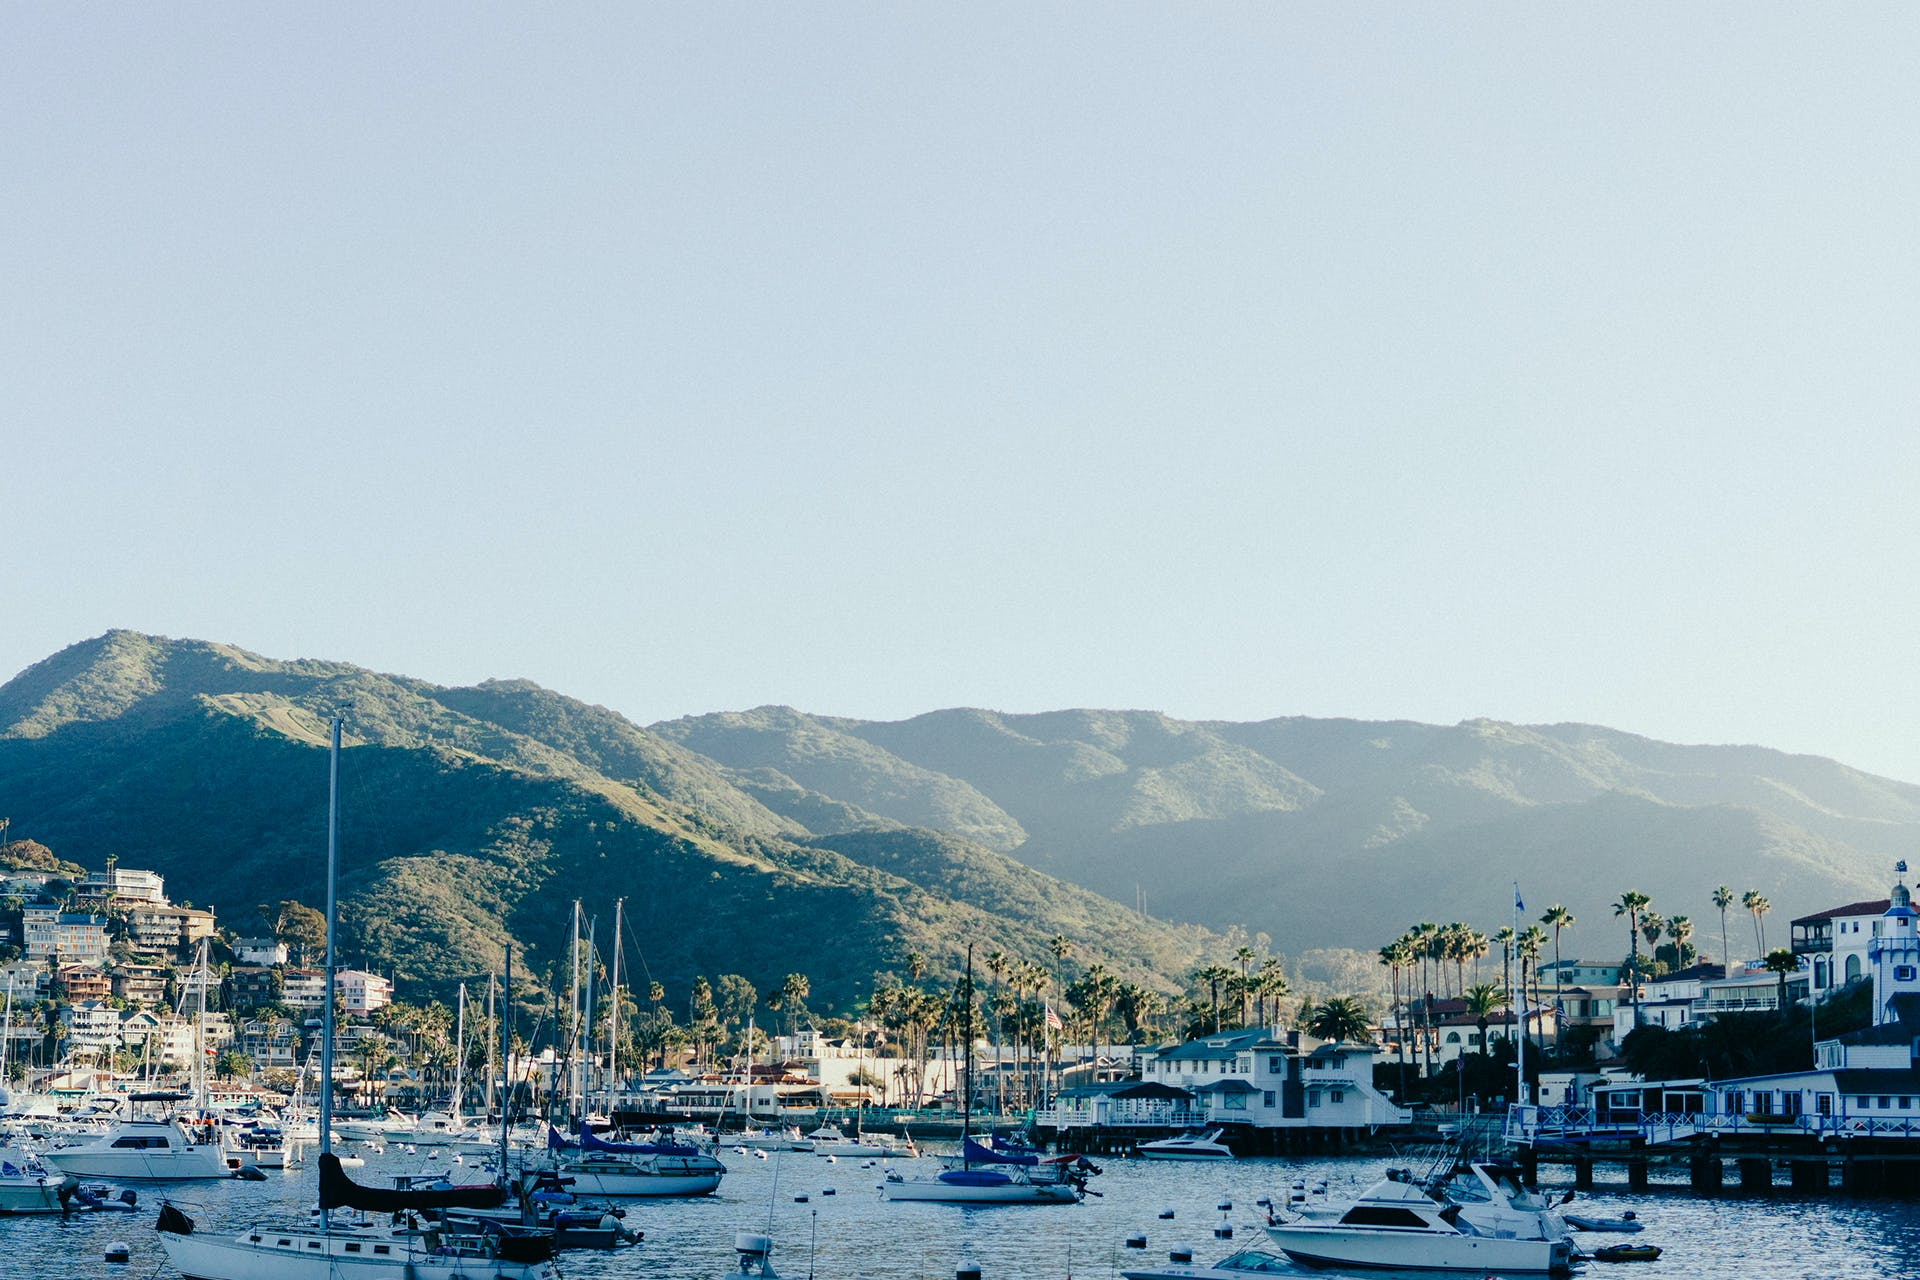 Free stock photo of sea, mountains, bay, boats